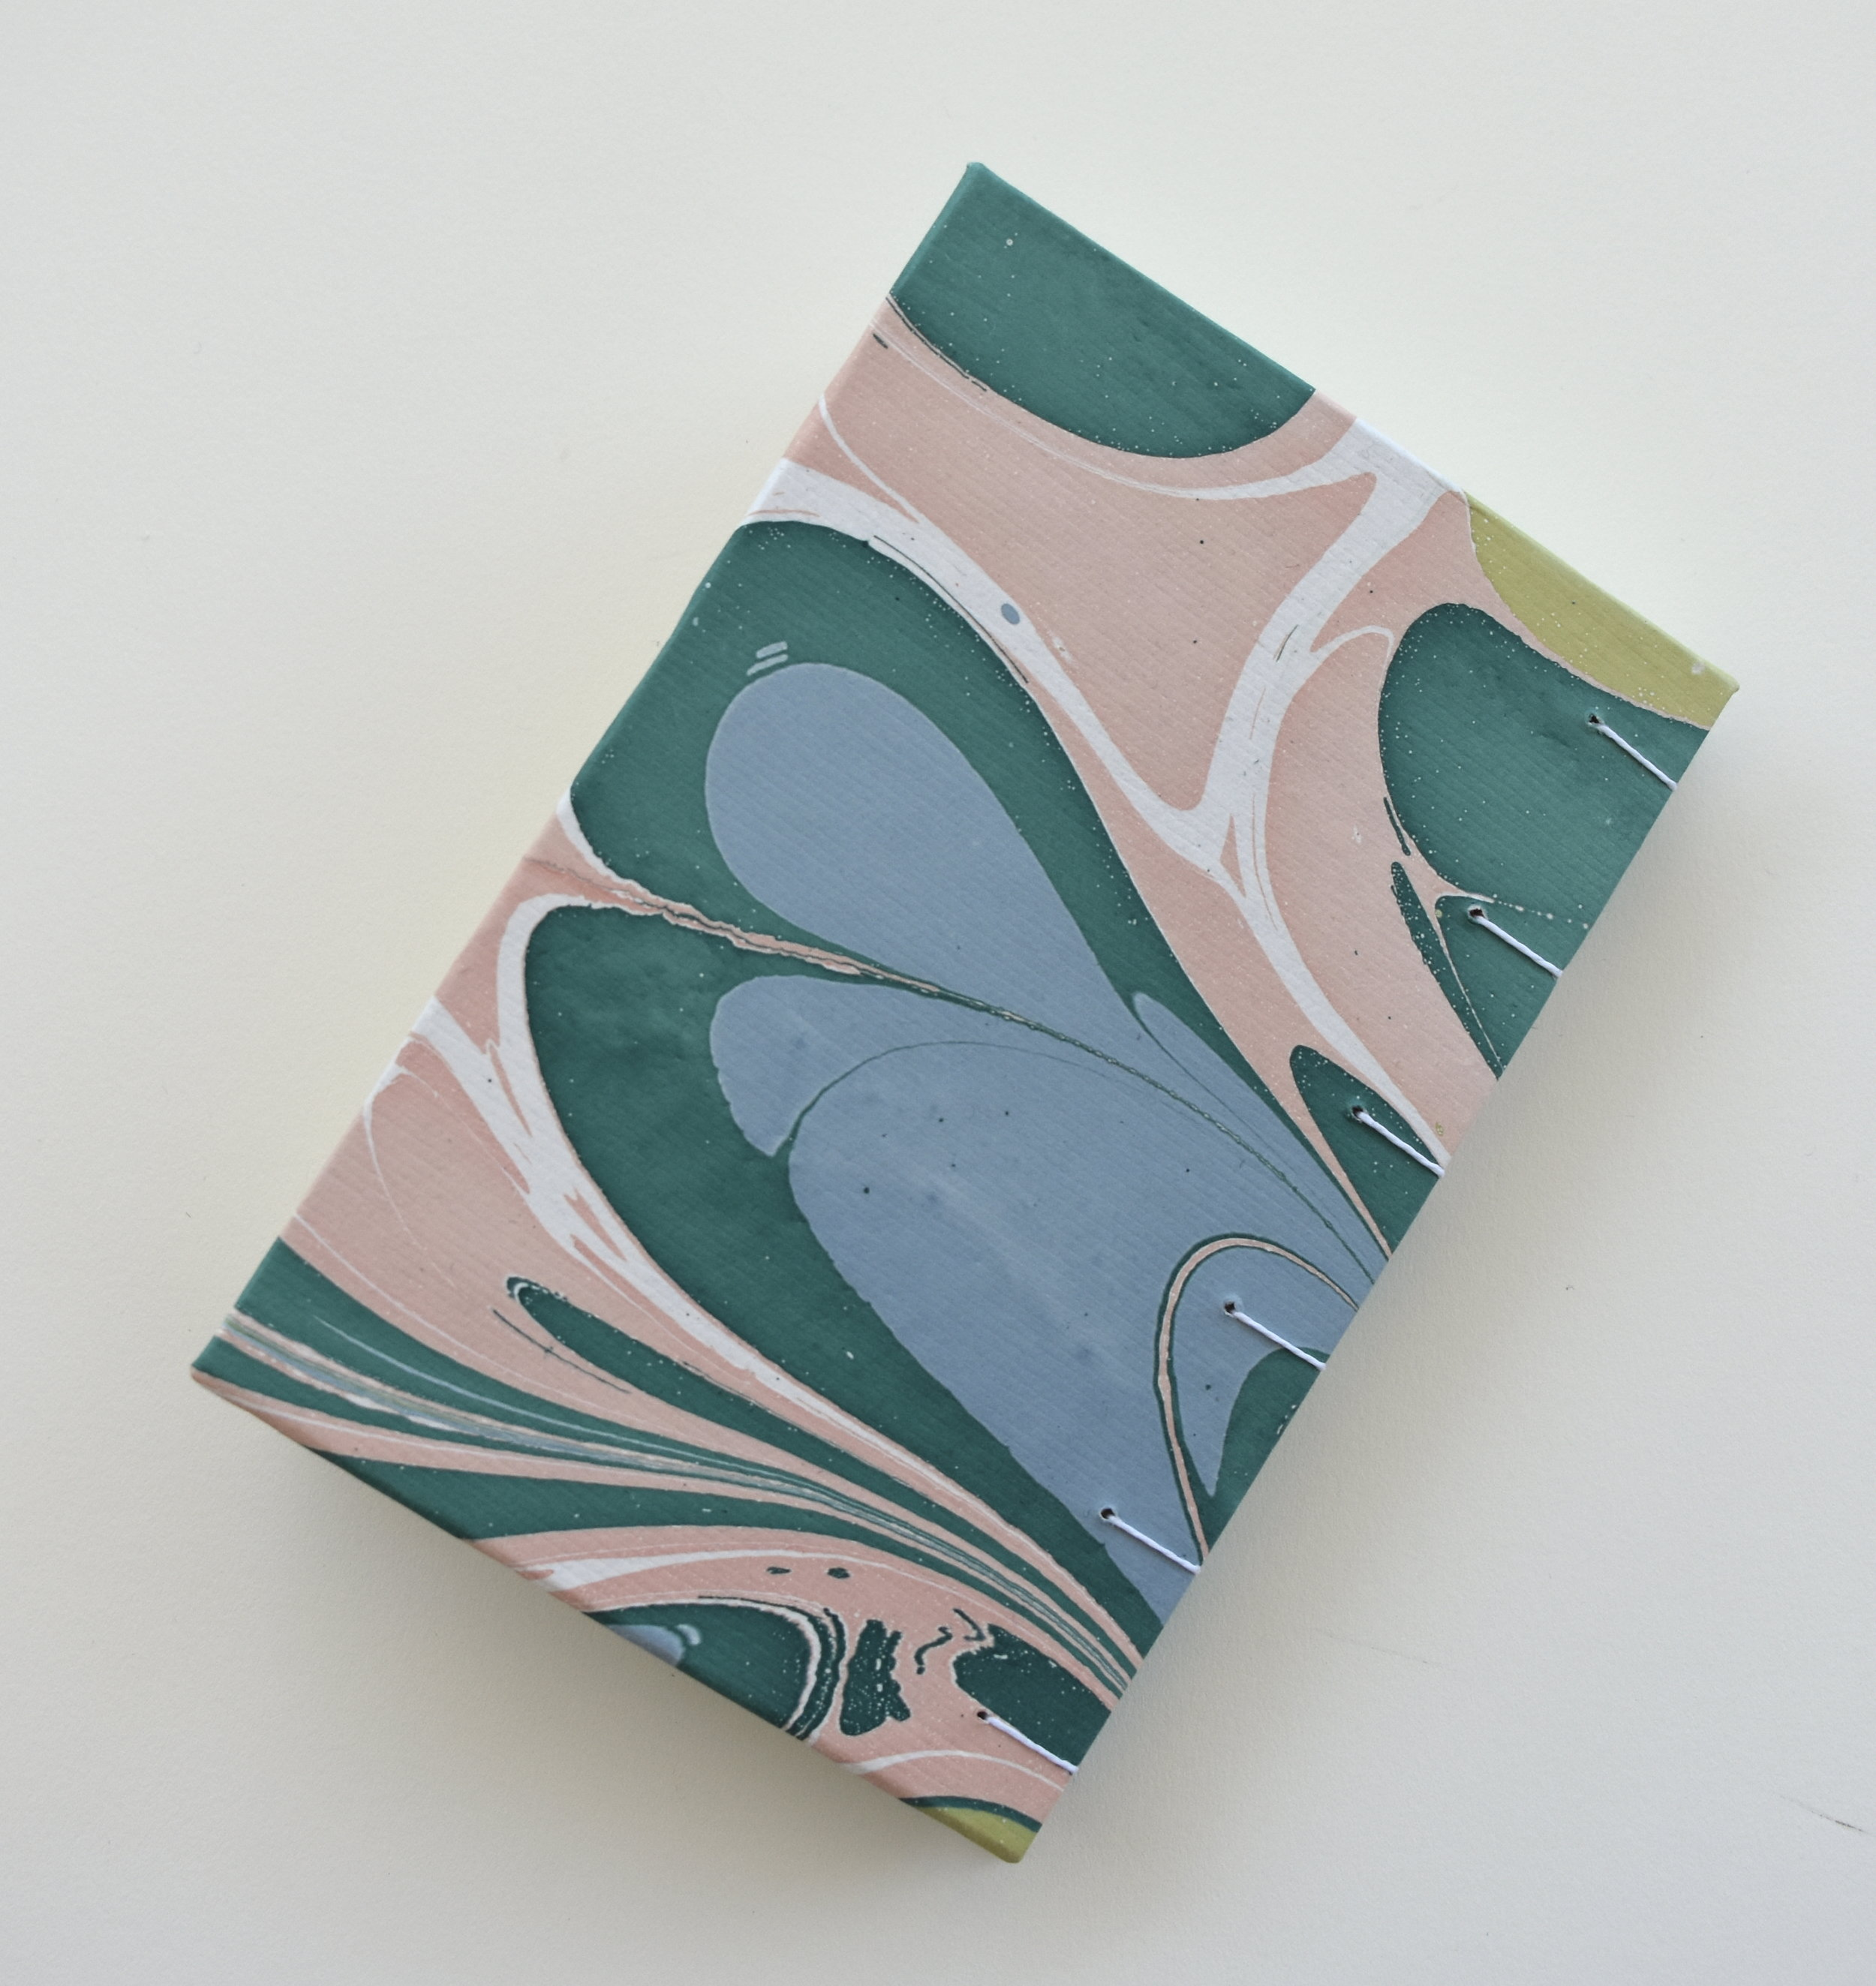 Small Teal and Pink book, 2019